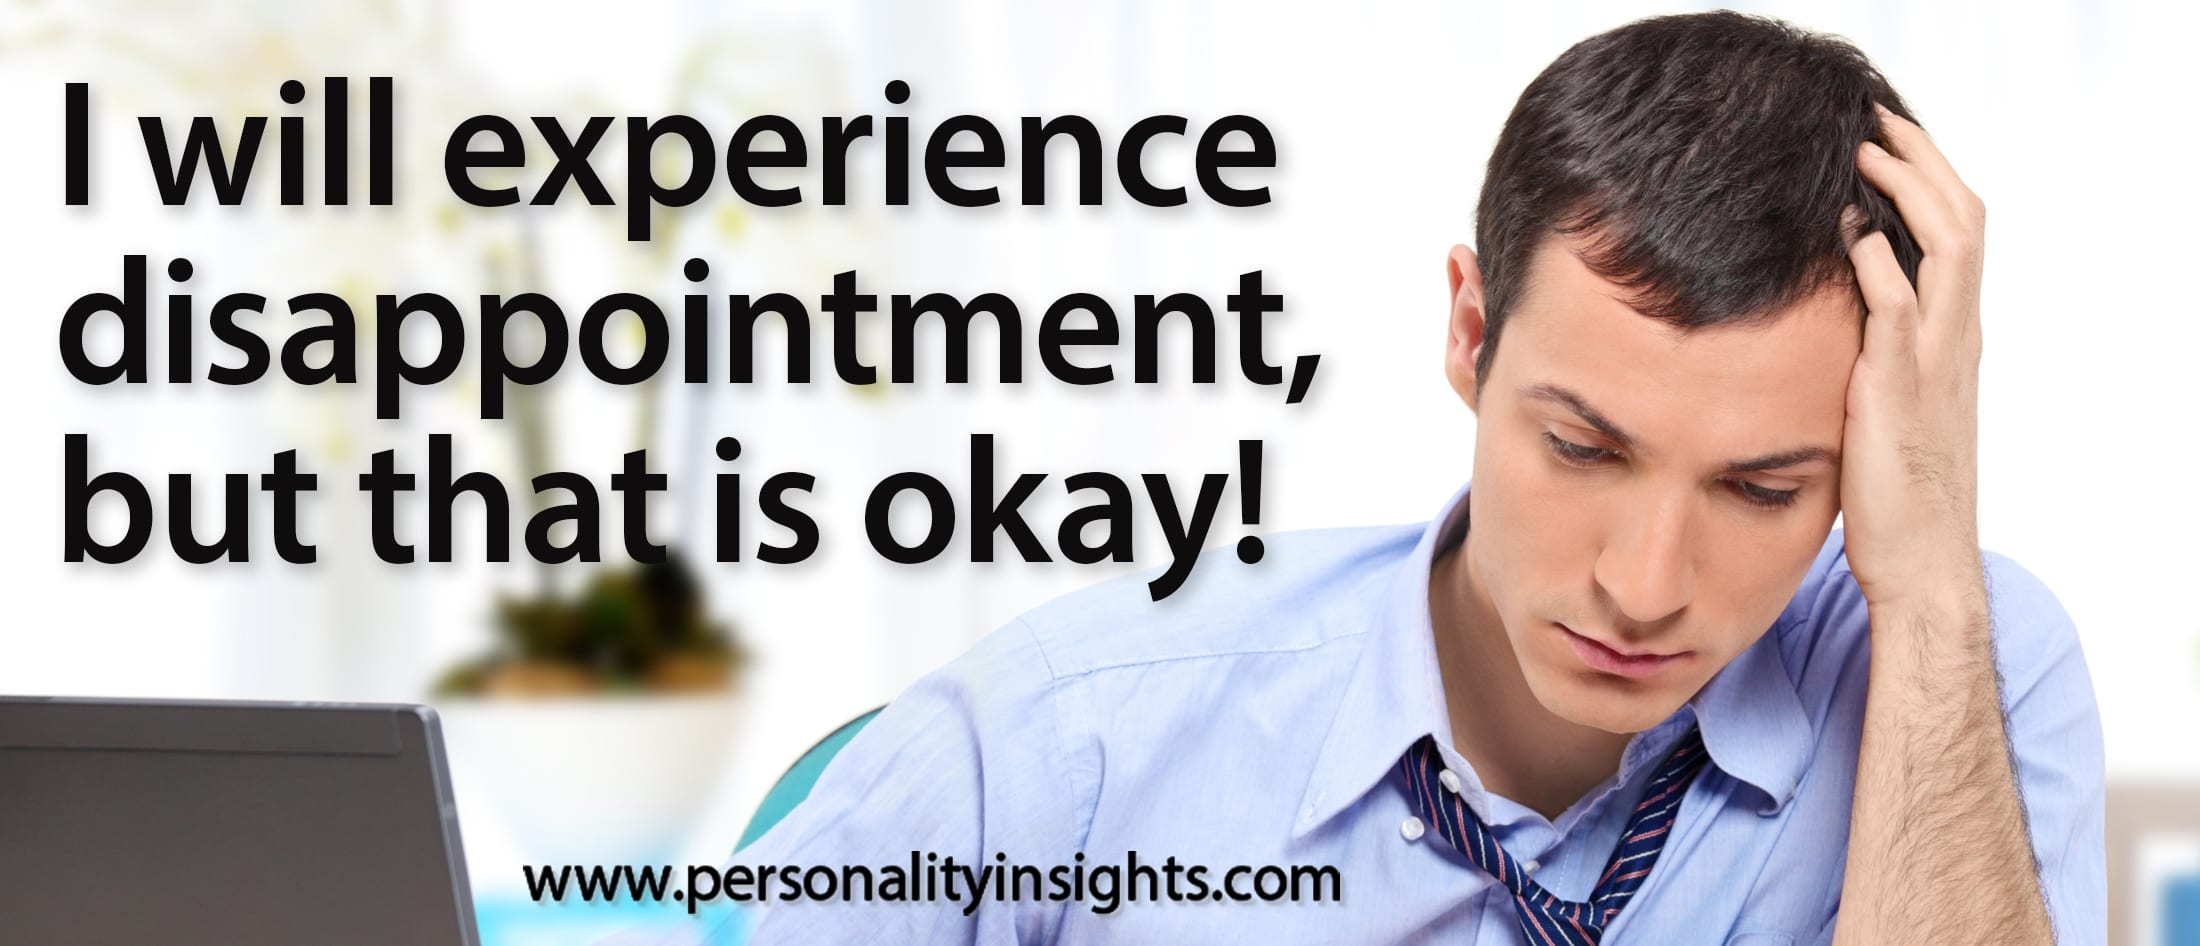 Tip: I Will Experience Disappointment, But That Is Okay!